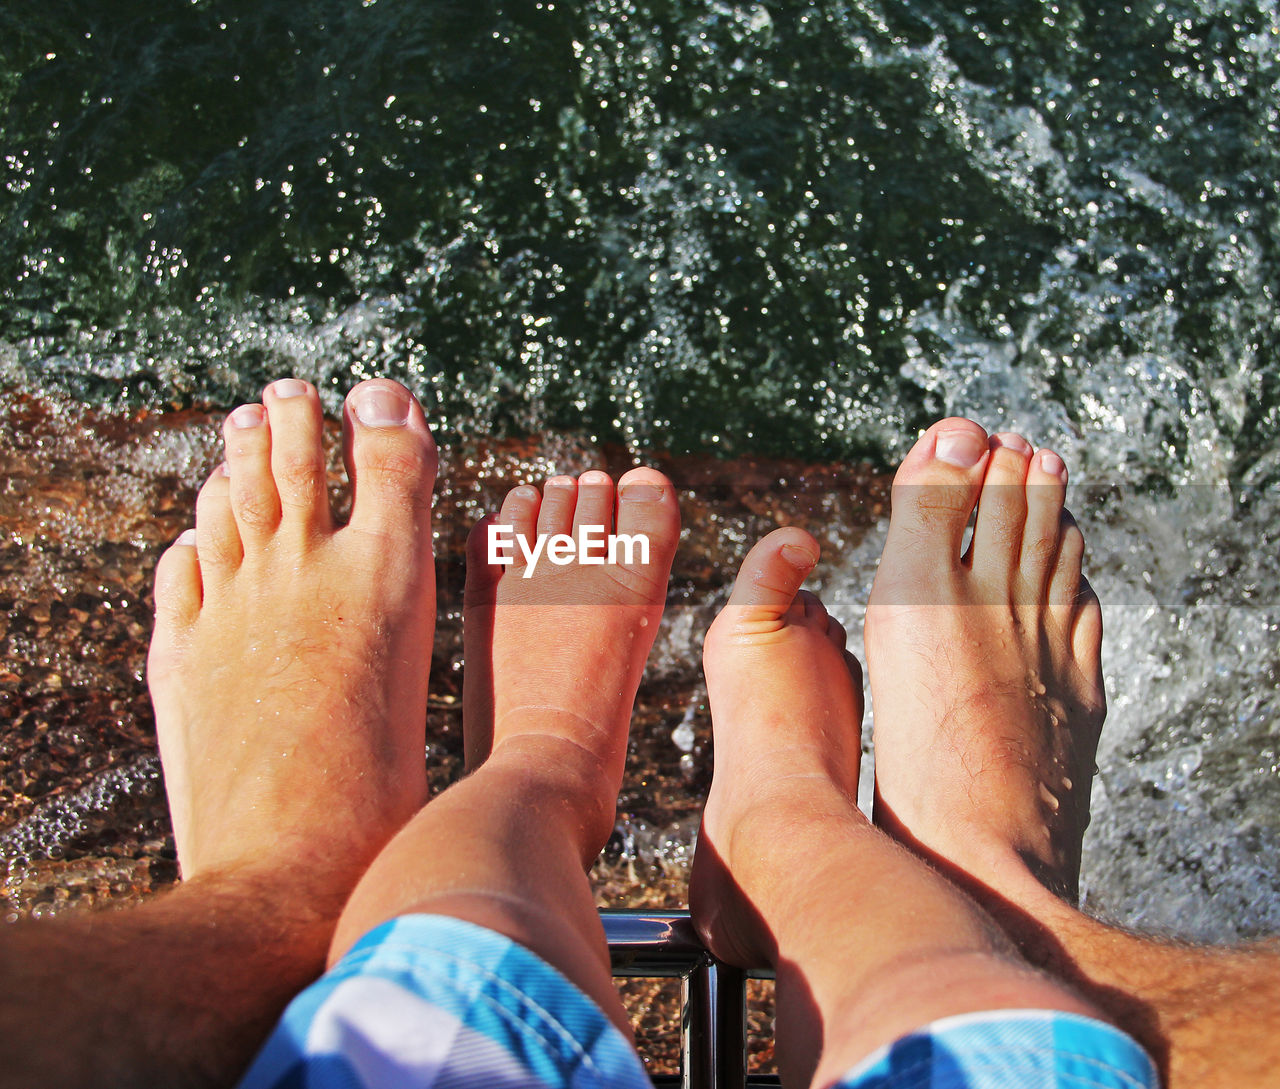 human body part, real people, barefoot, body part, low section, personal perspective, human leg, nature, leisure activity, two people, lifestyles, people, day, water, men, human foot, togetherness, outdoors, sunlight, couple - relationship